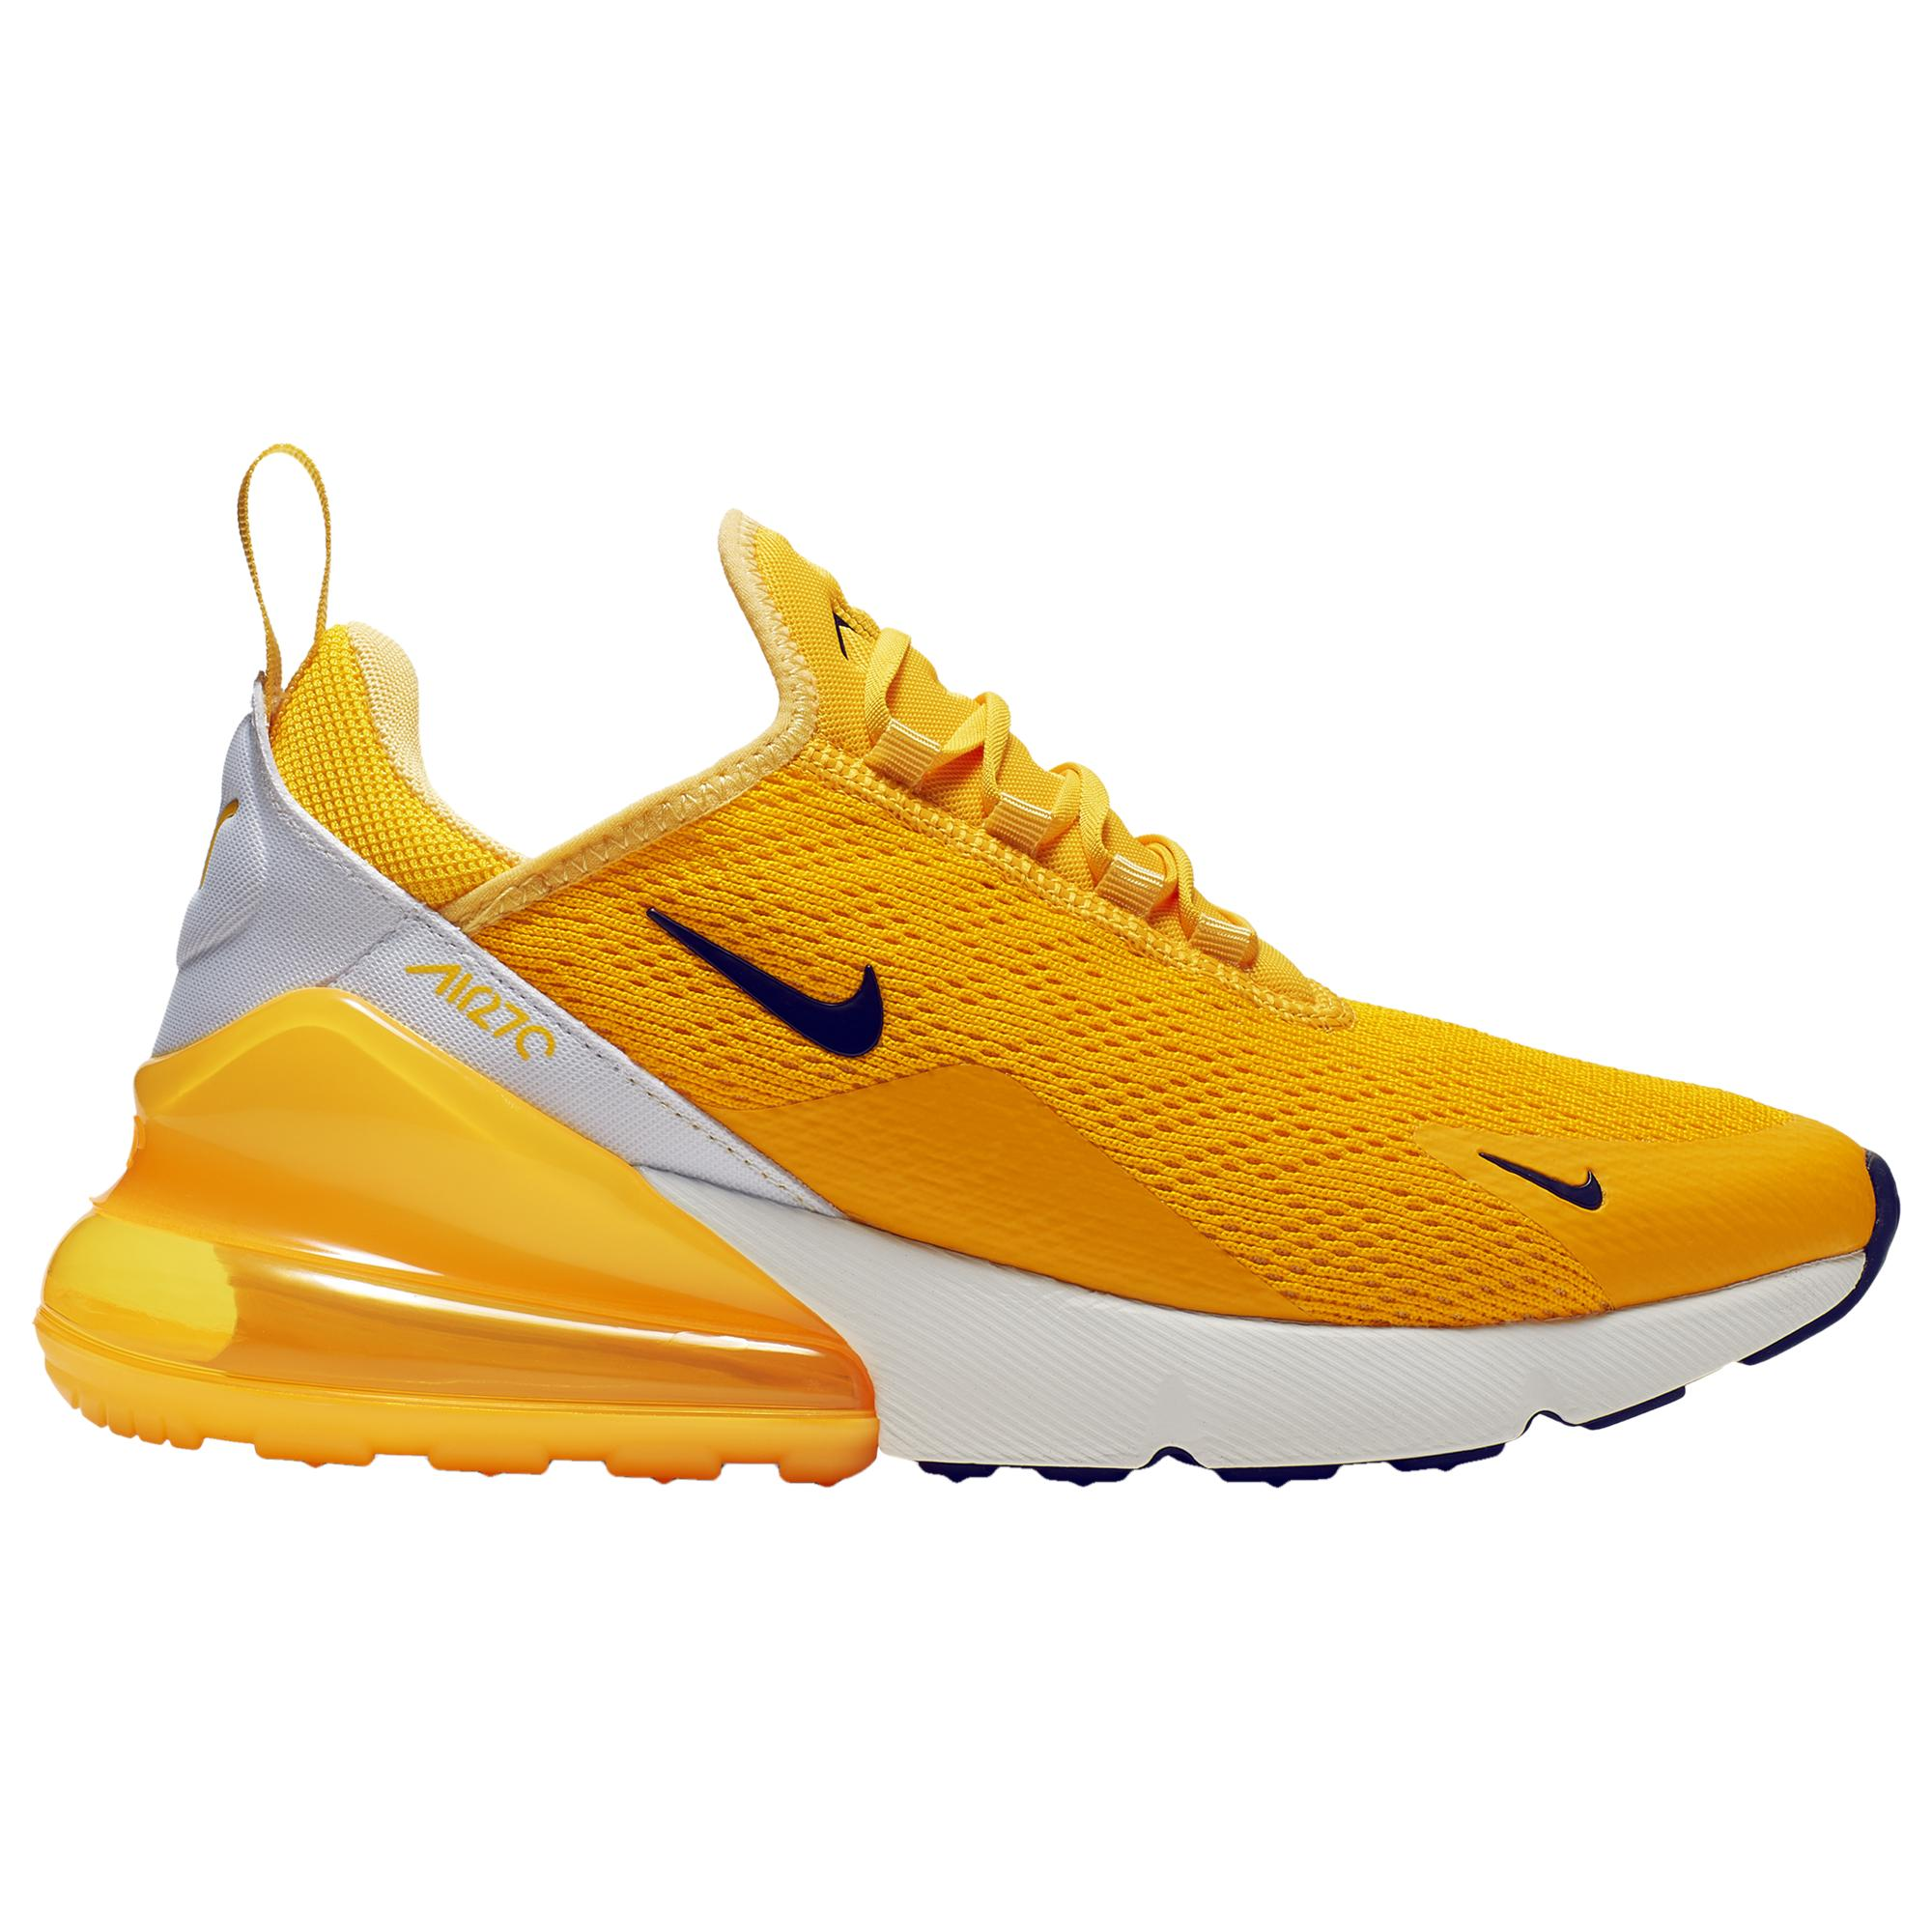 air max 270 all yellow off 53% - www